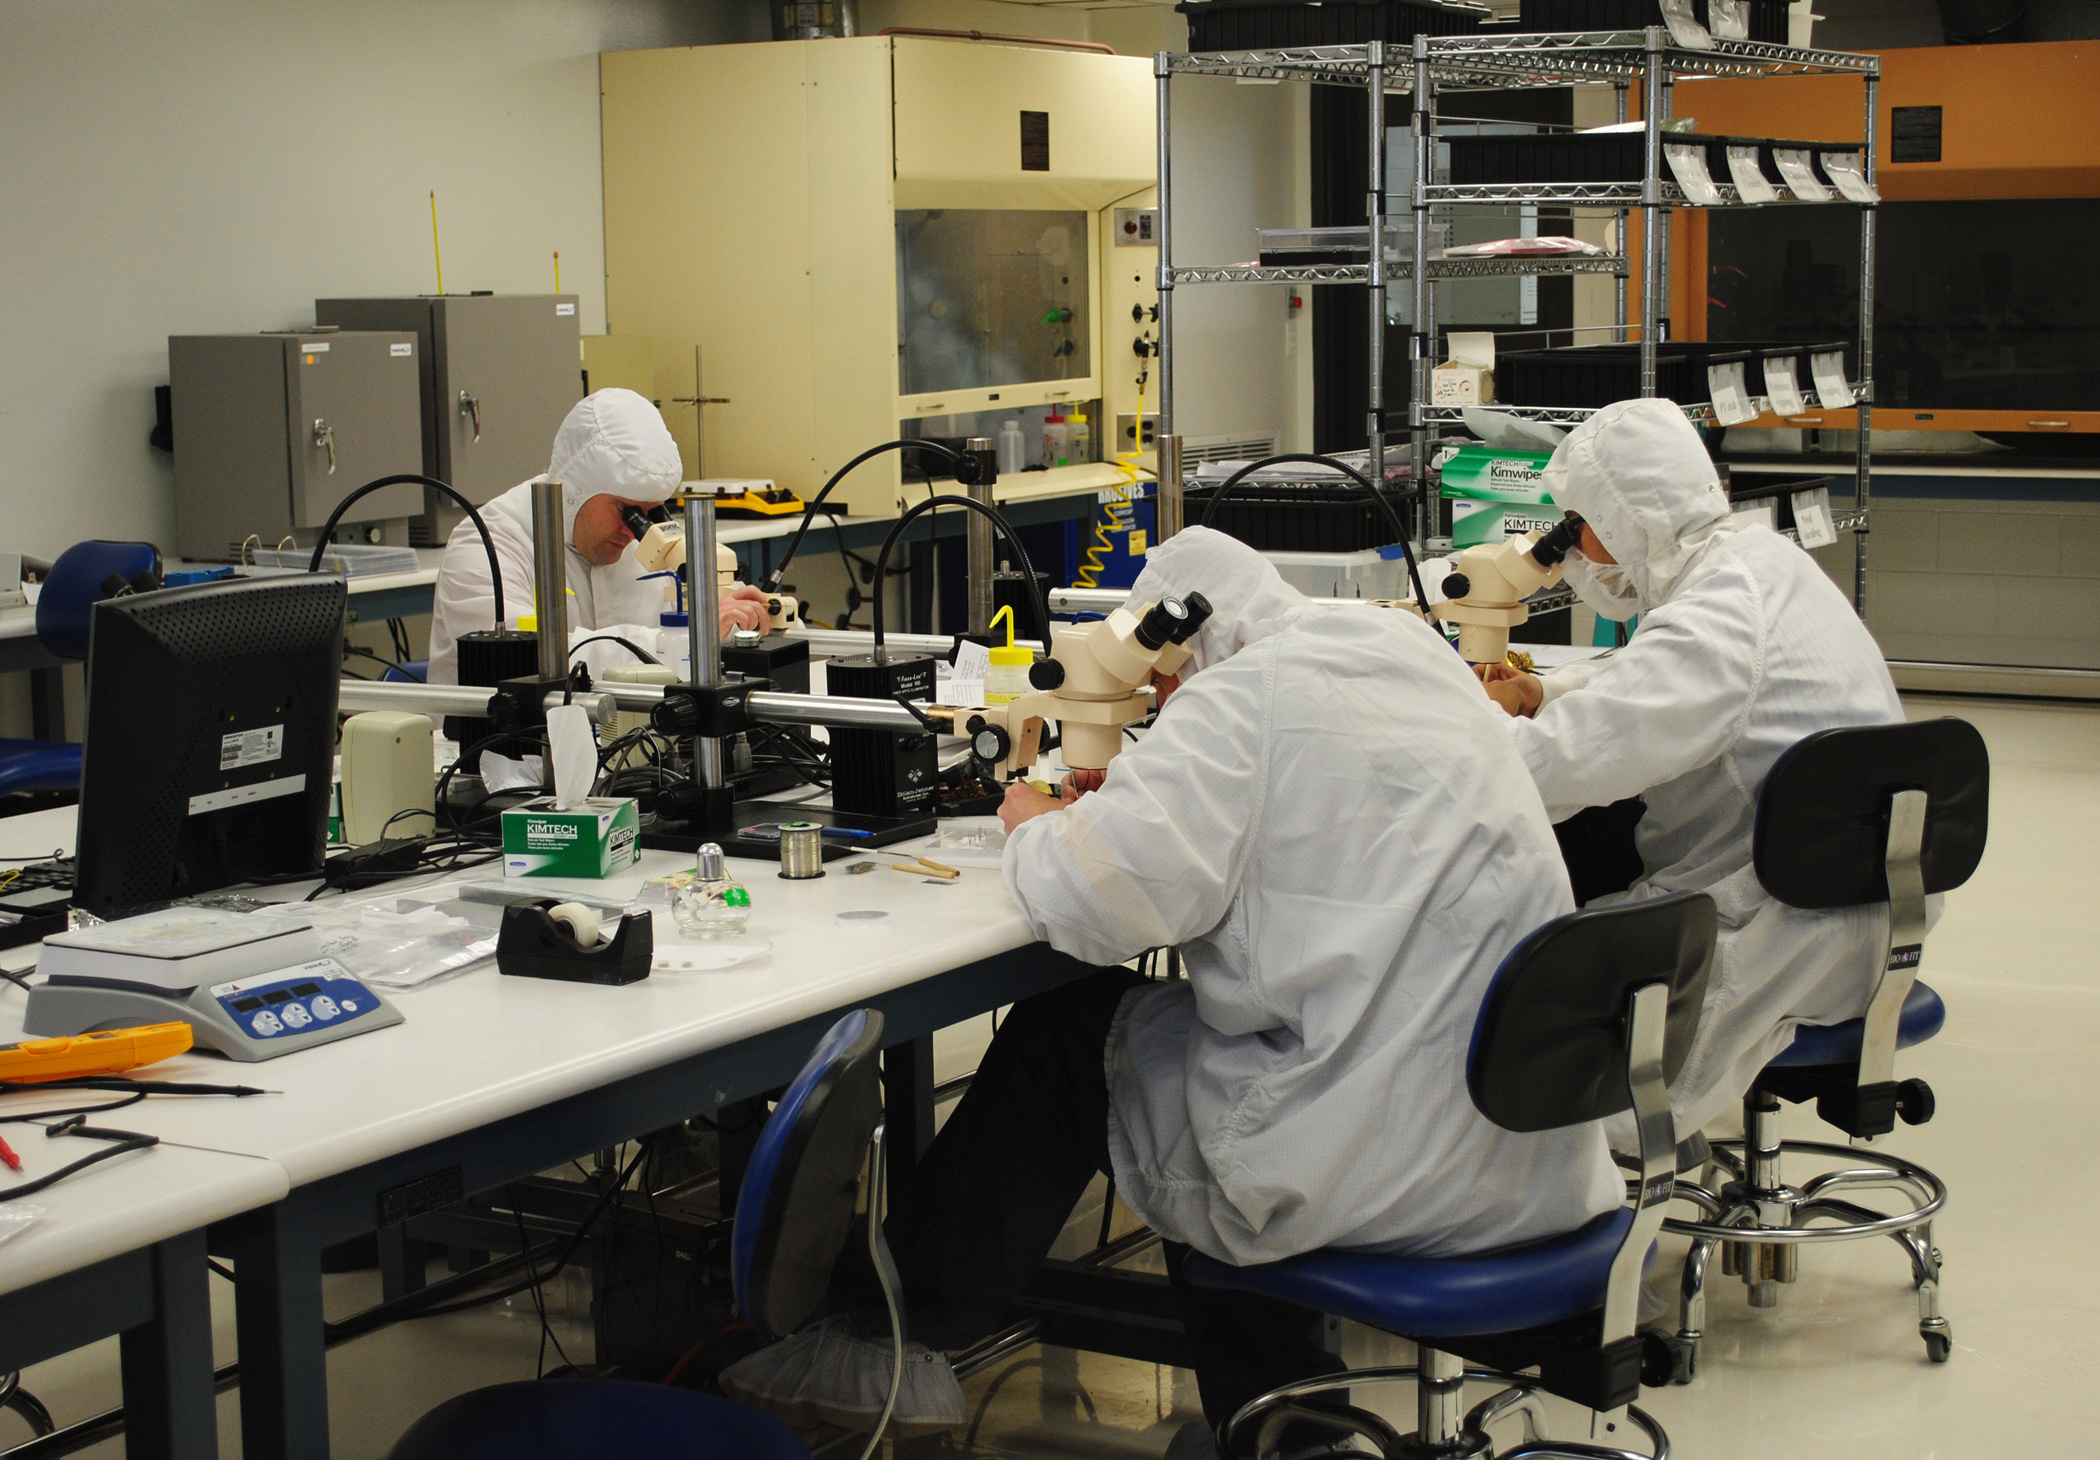 Employees work in a clean room at Blackrock Microsystems, one of the most recent startup companies to come out of the University of Utah.